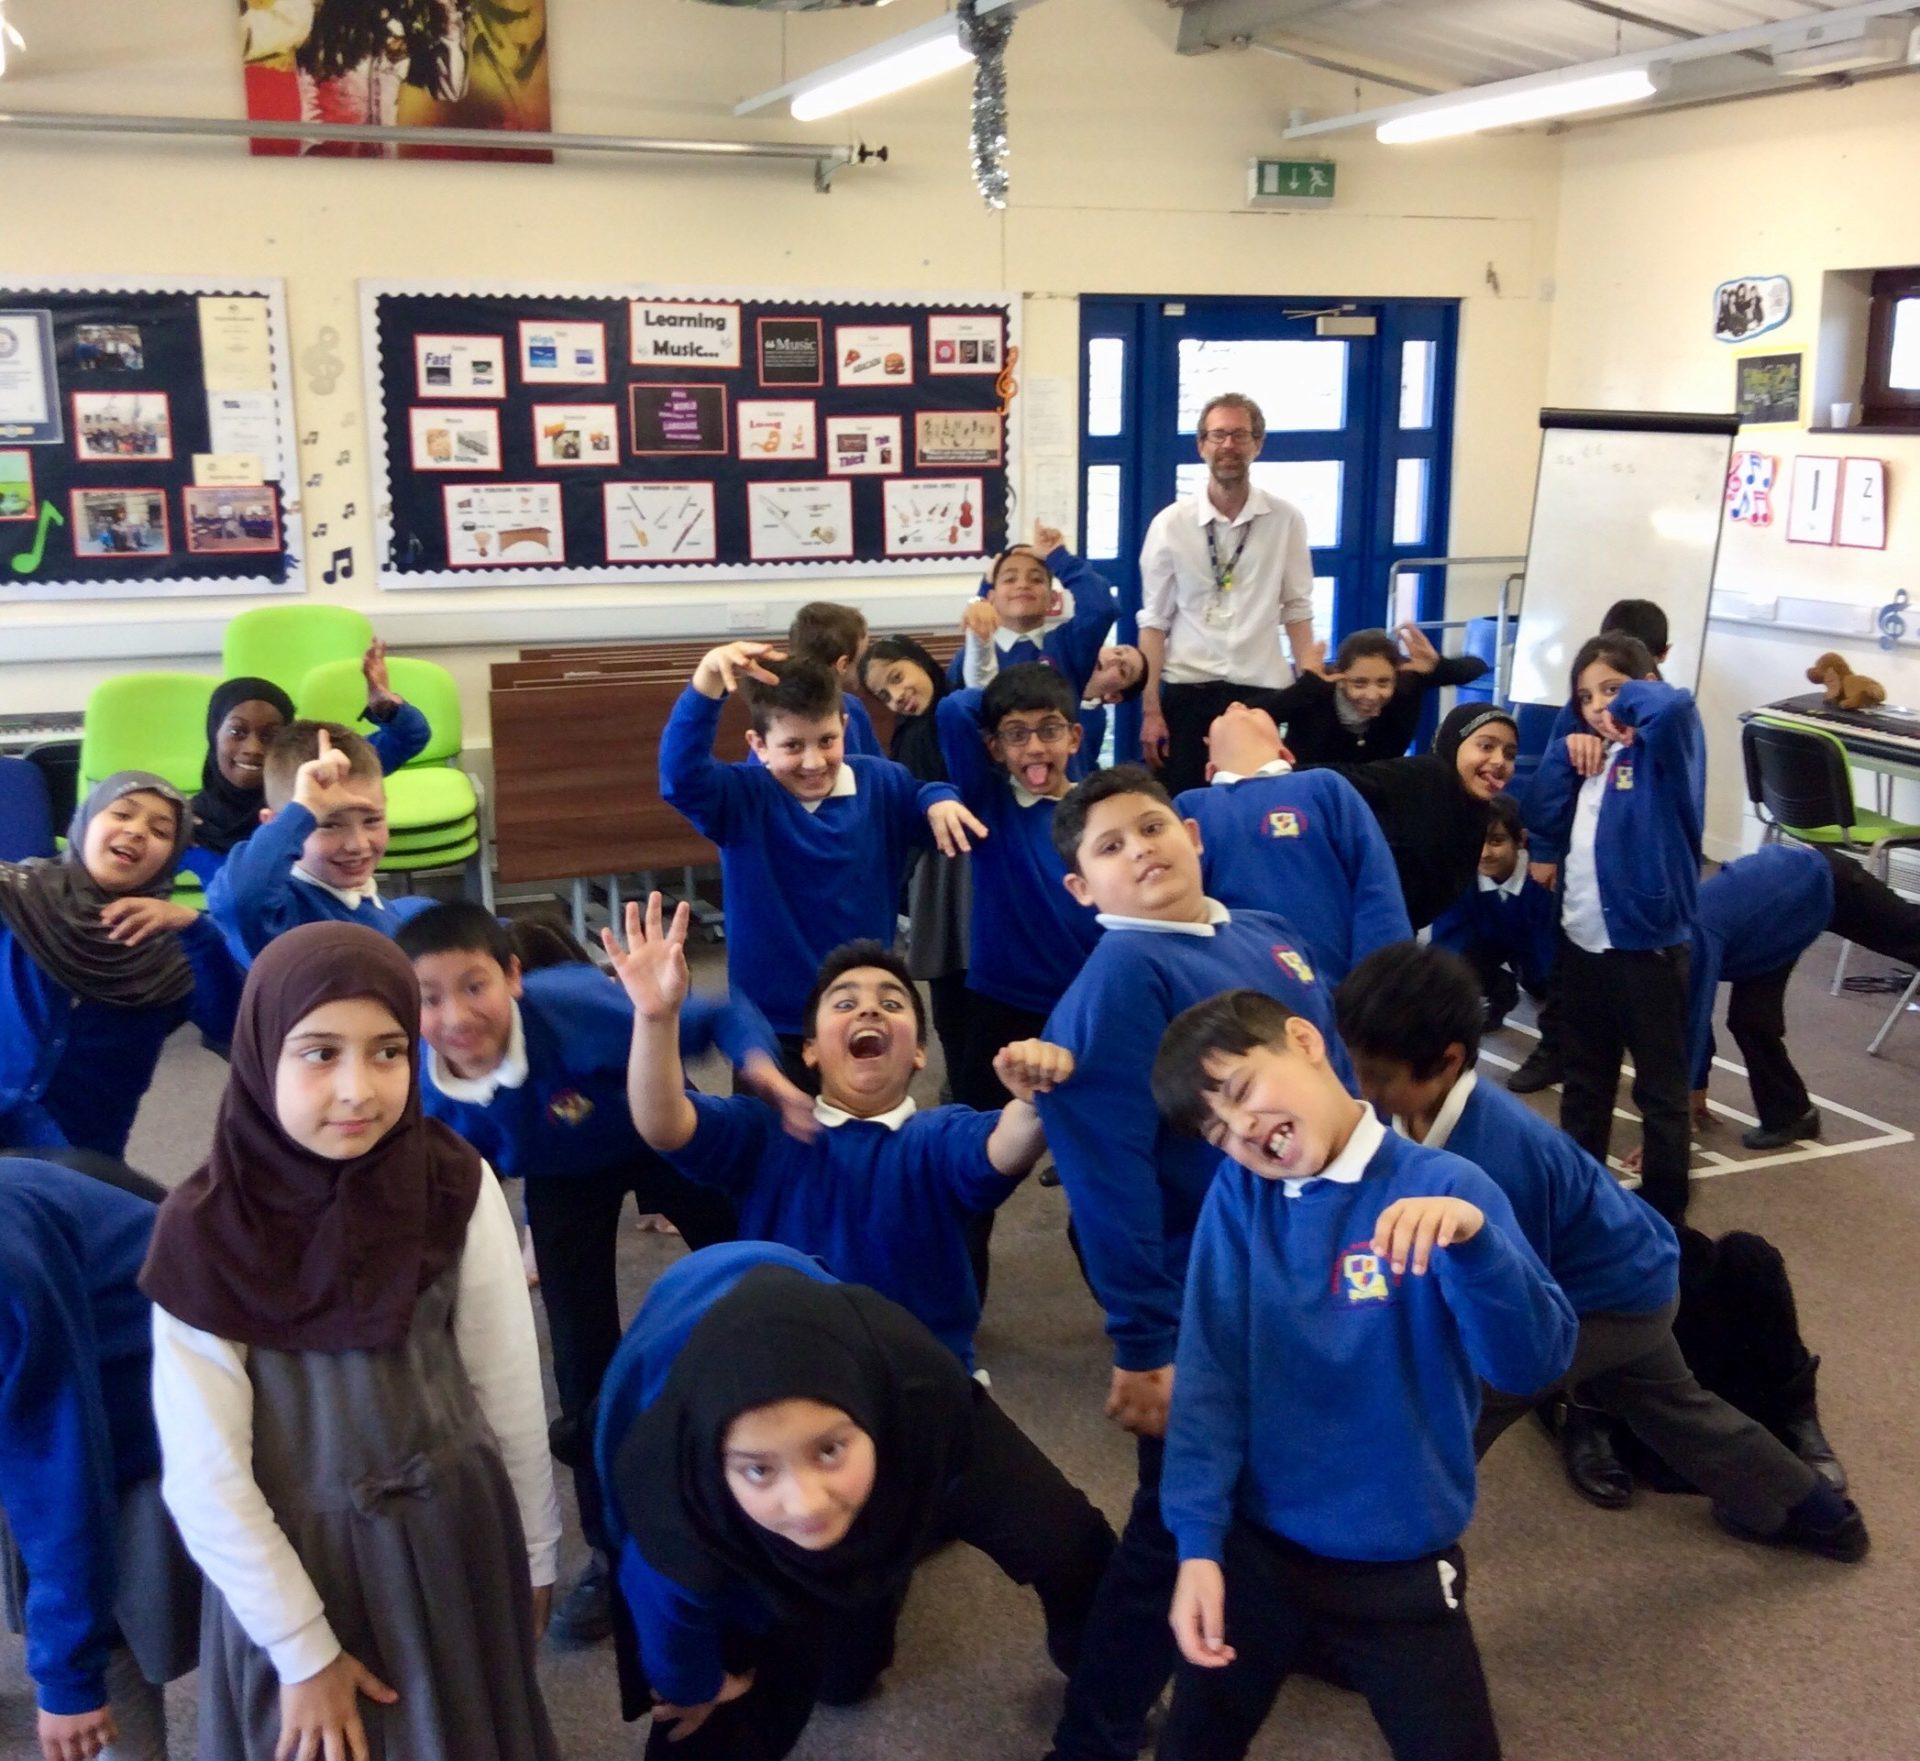 Feversham Primary School Case Study Children Dancing